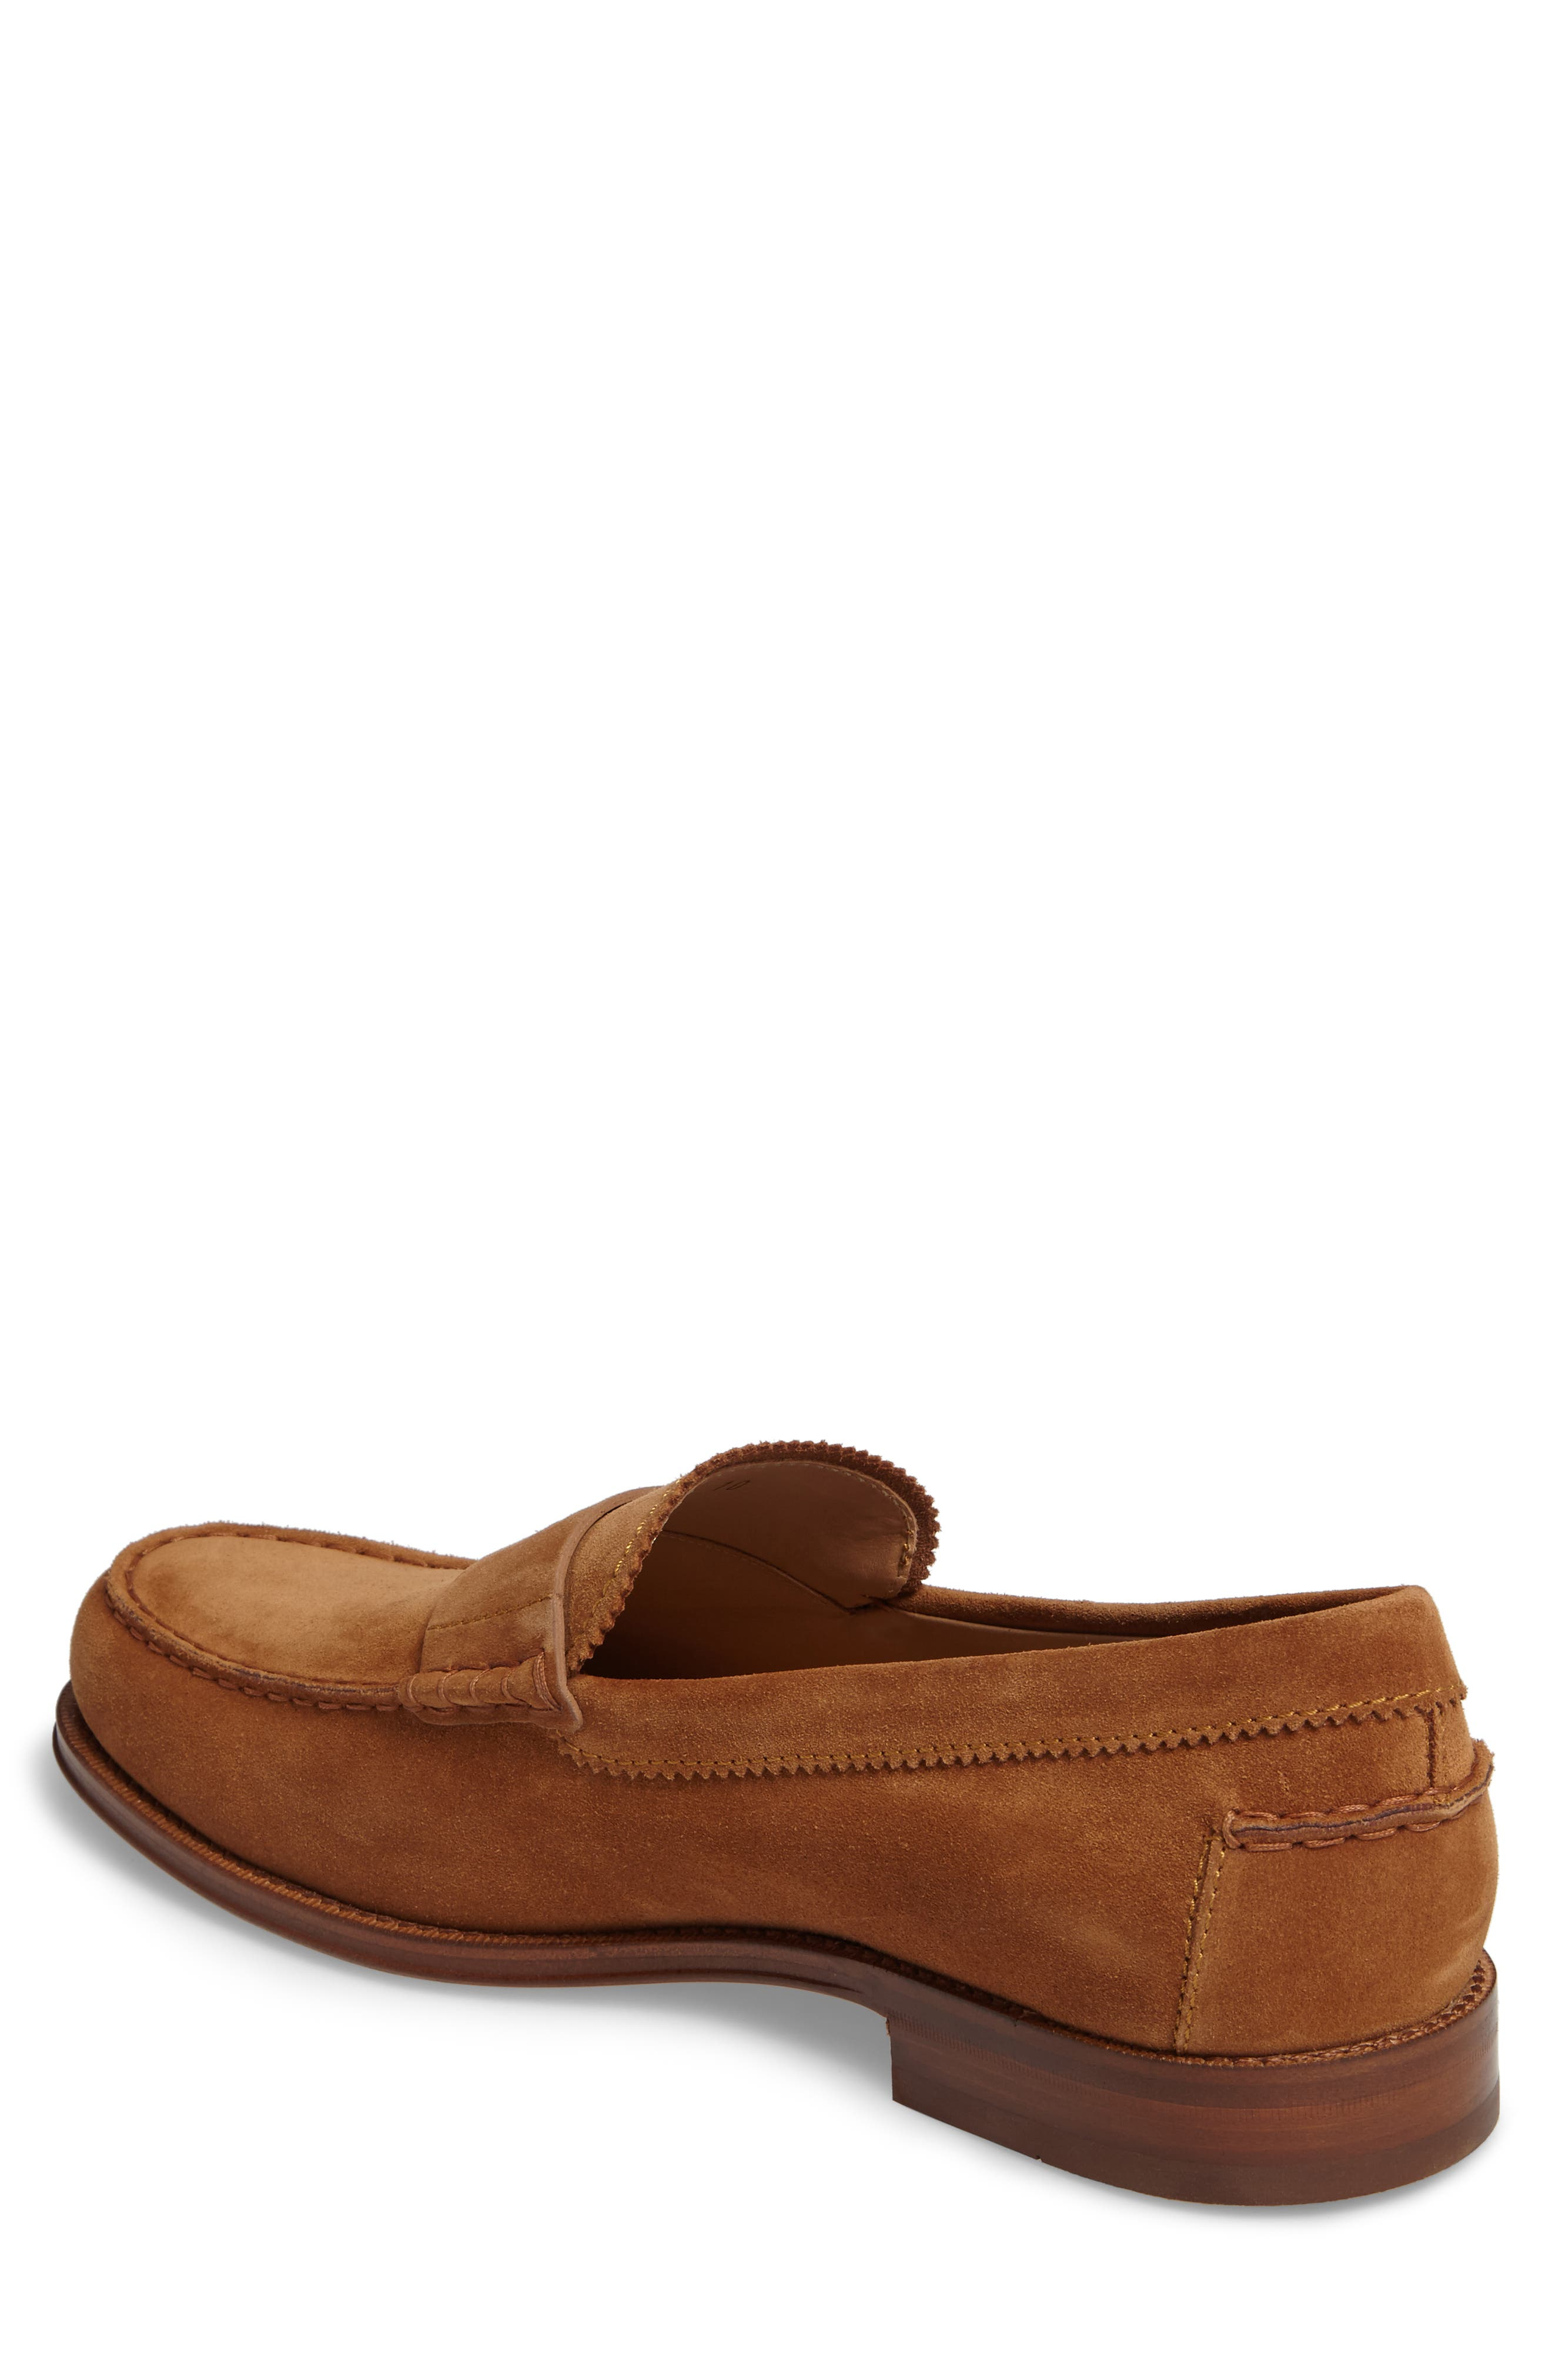 Suede Penny Loafer,                             Alternate thumbnail 2, color,                             215